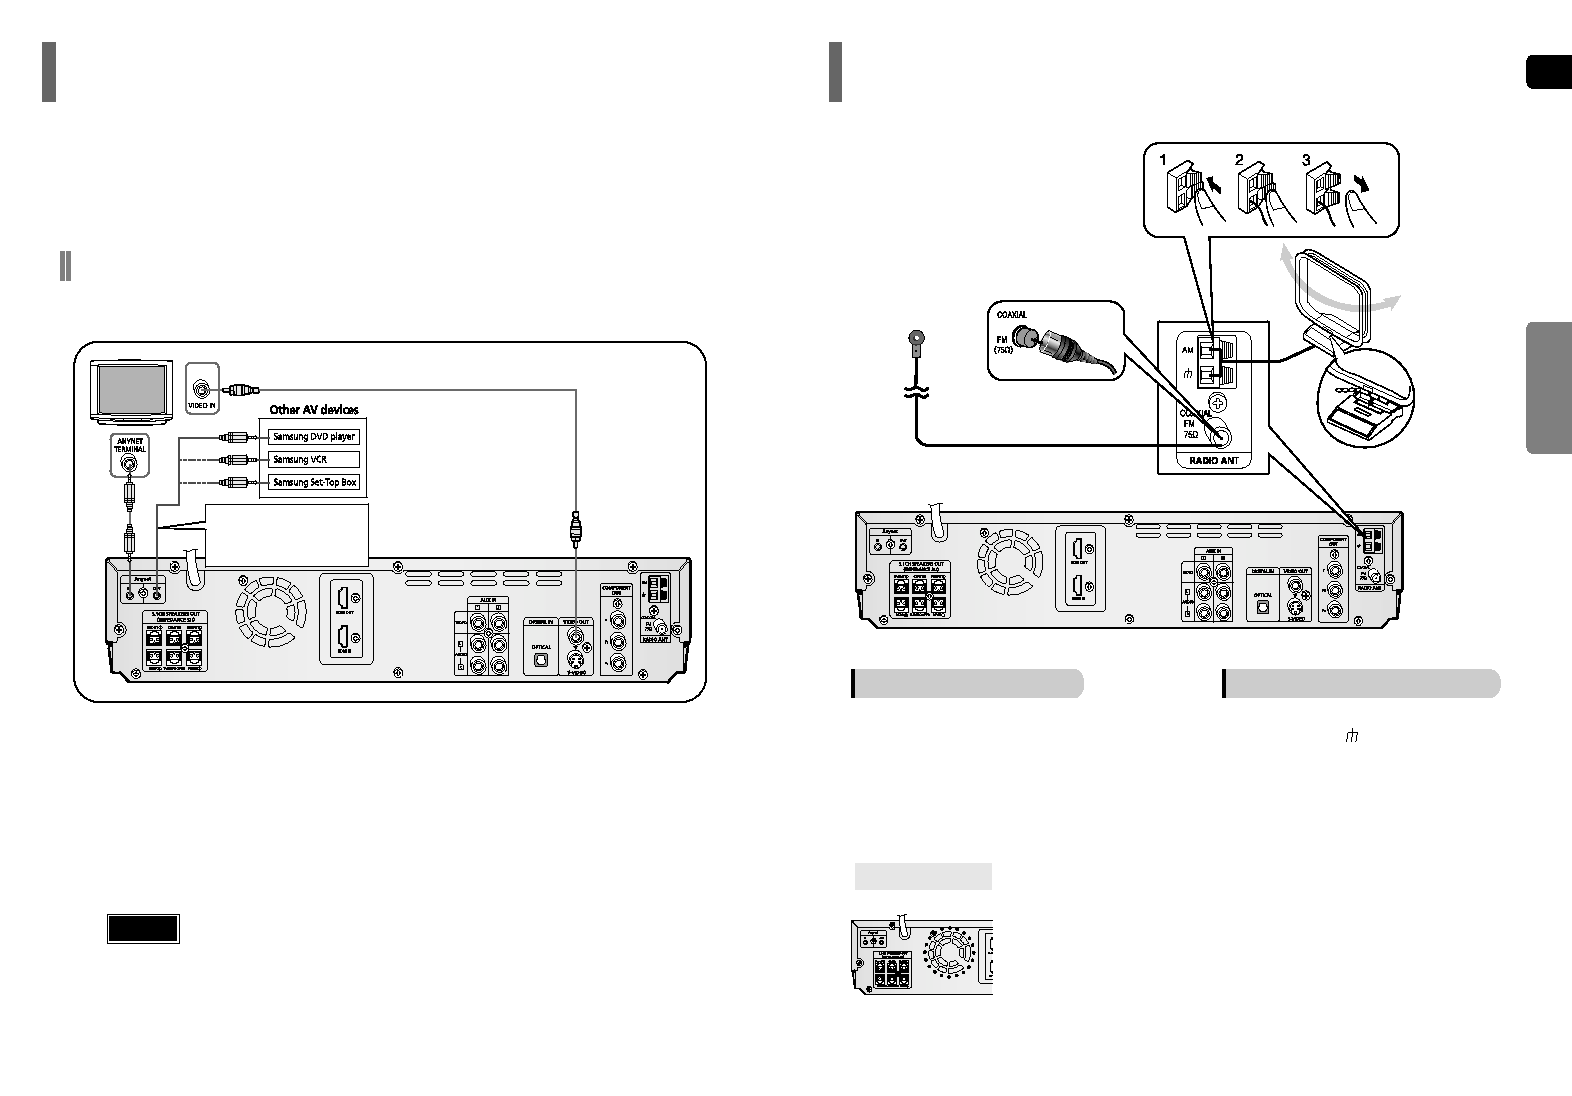 Wiring Diagram Home Theater Wiring Diagram Samsung Home Theater